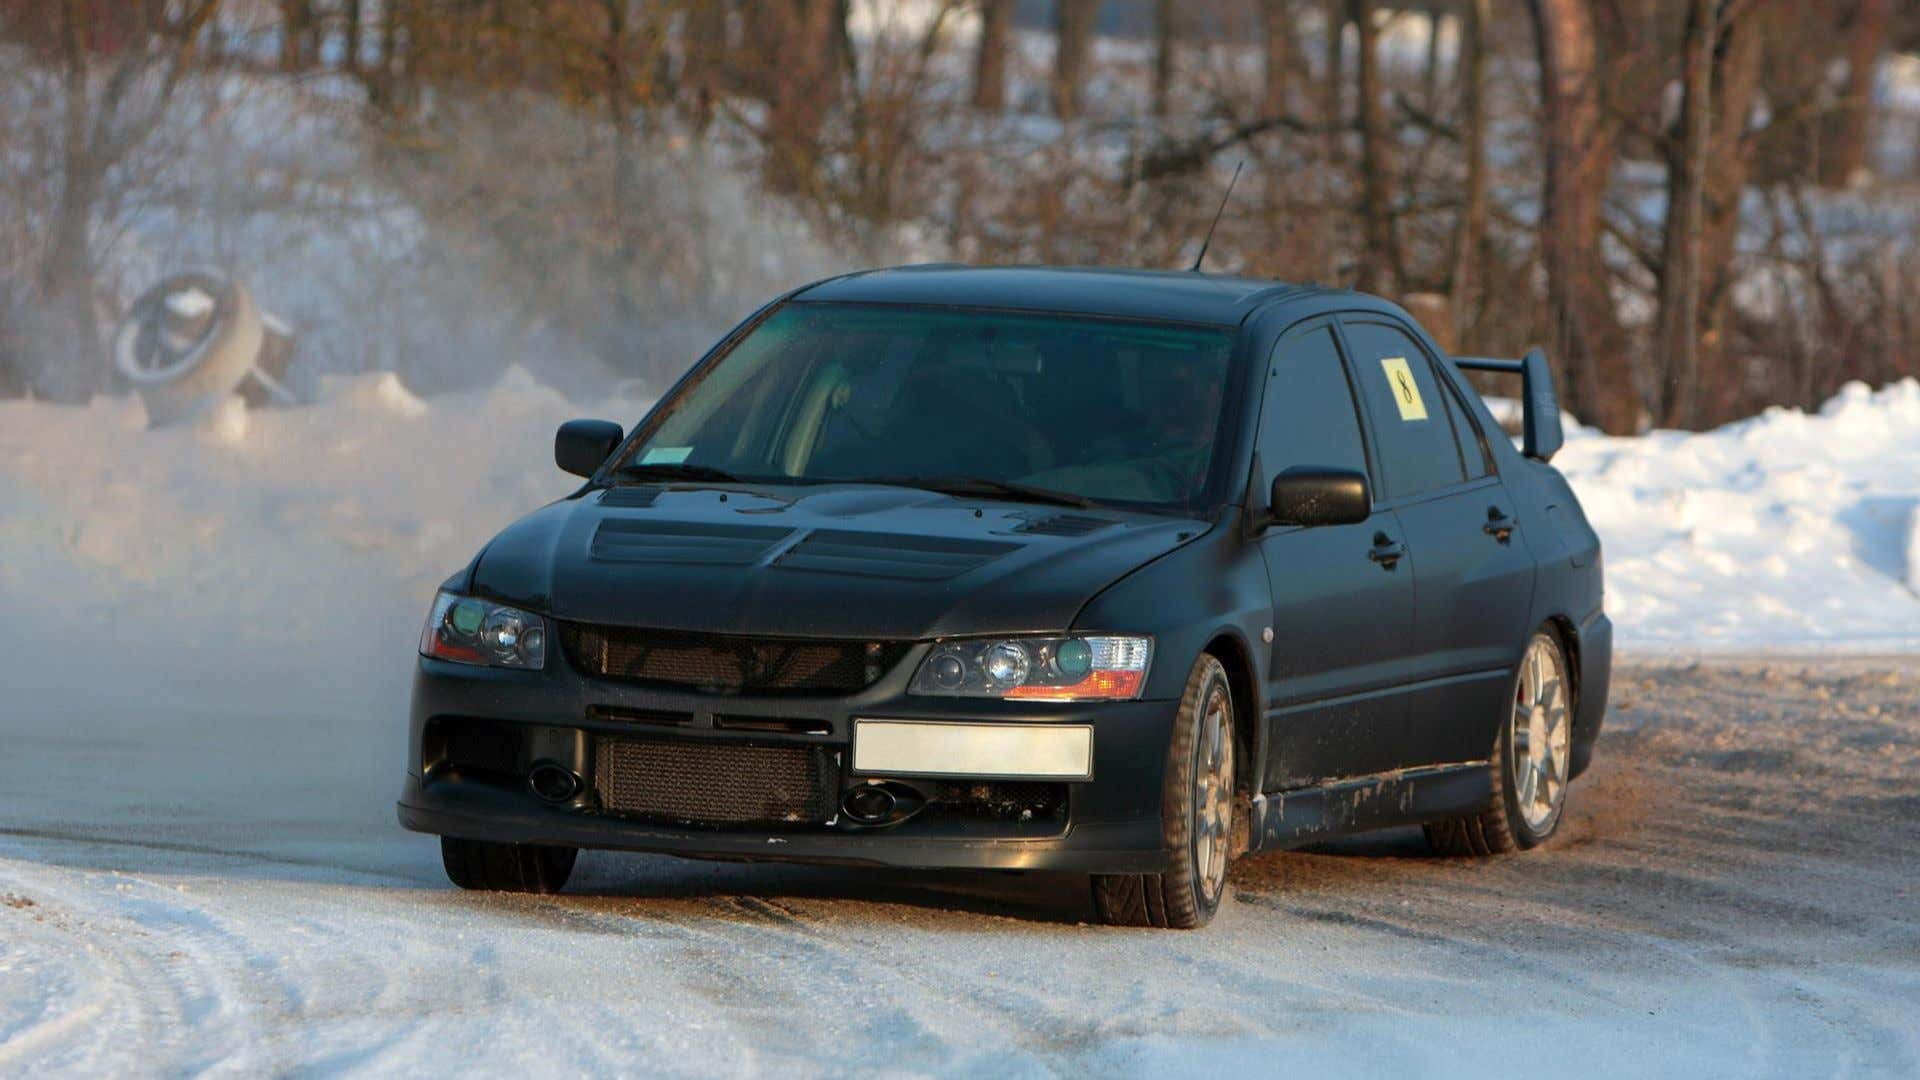 A Mitsubishi Evo encounters a slippery situation and goes full WRC!